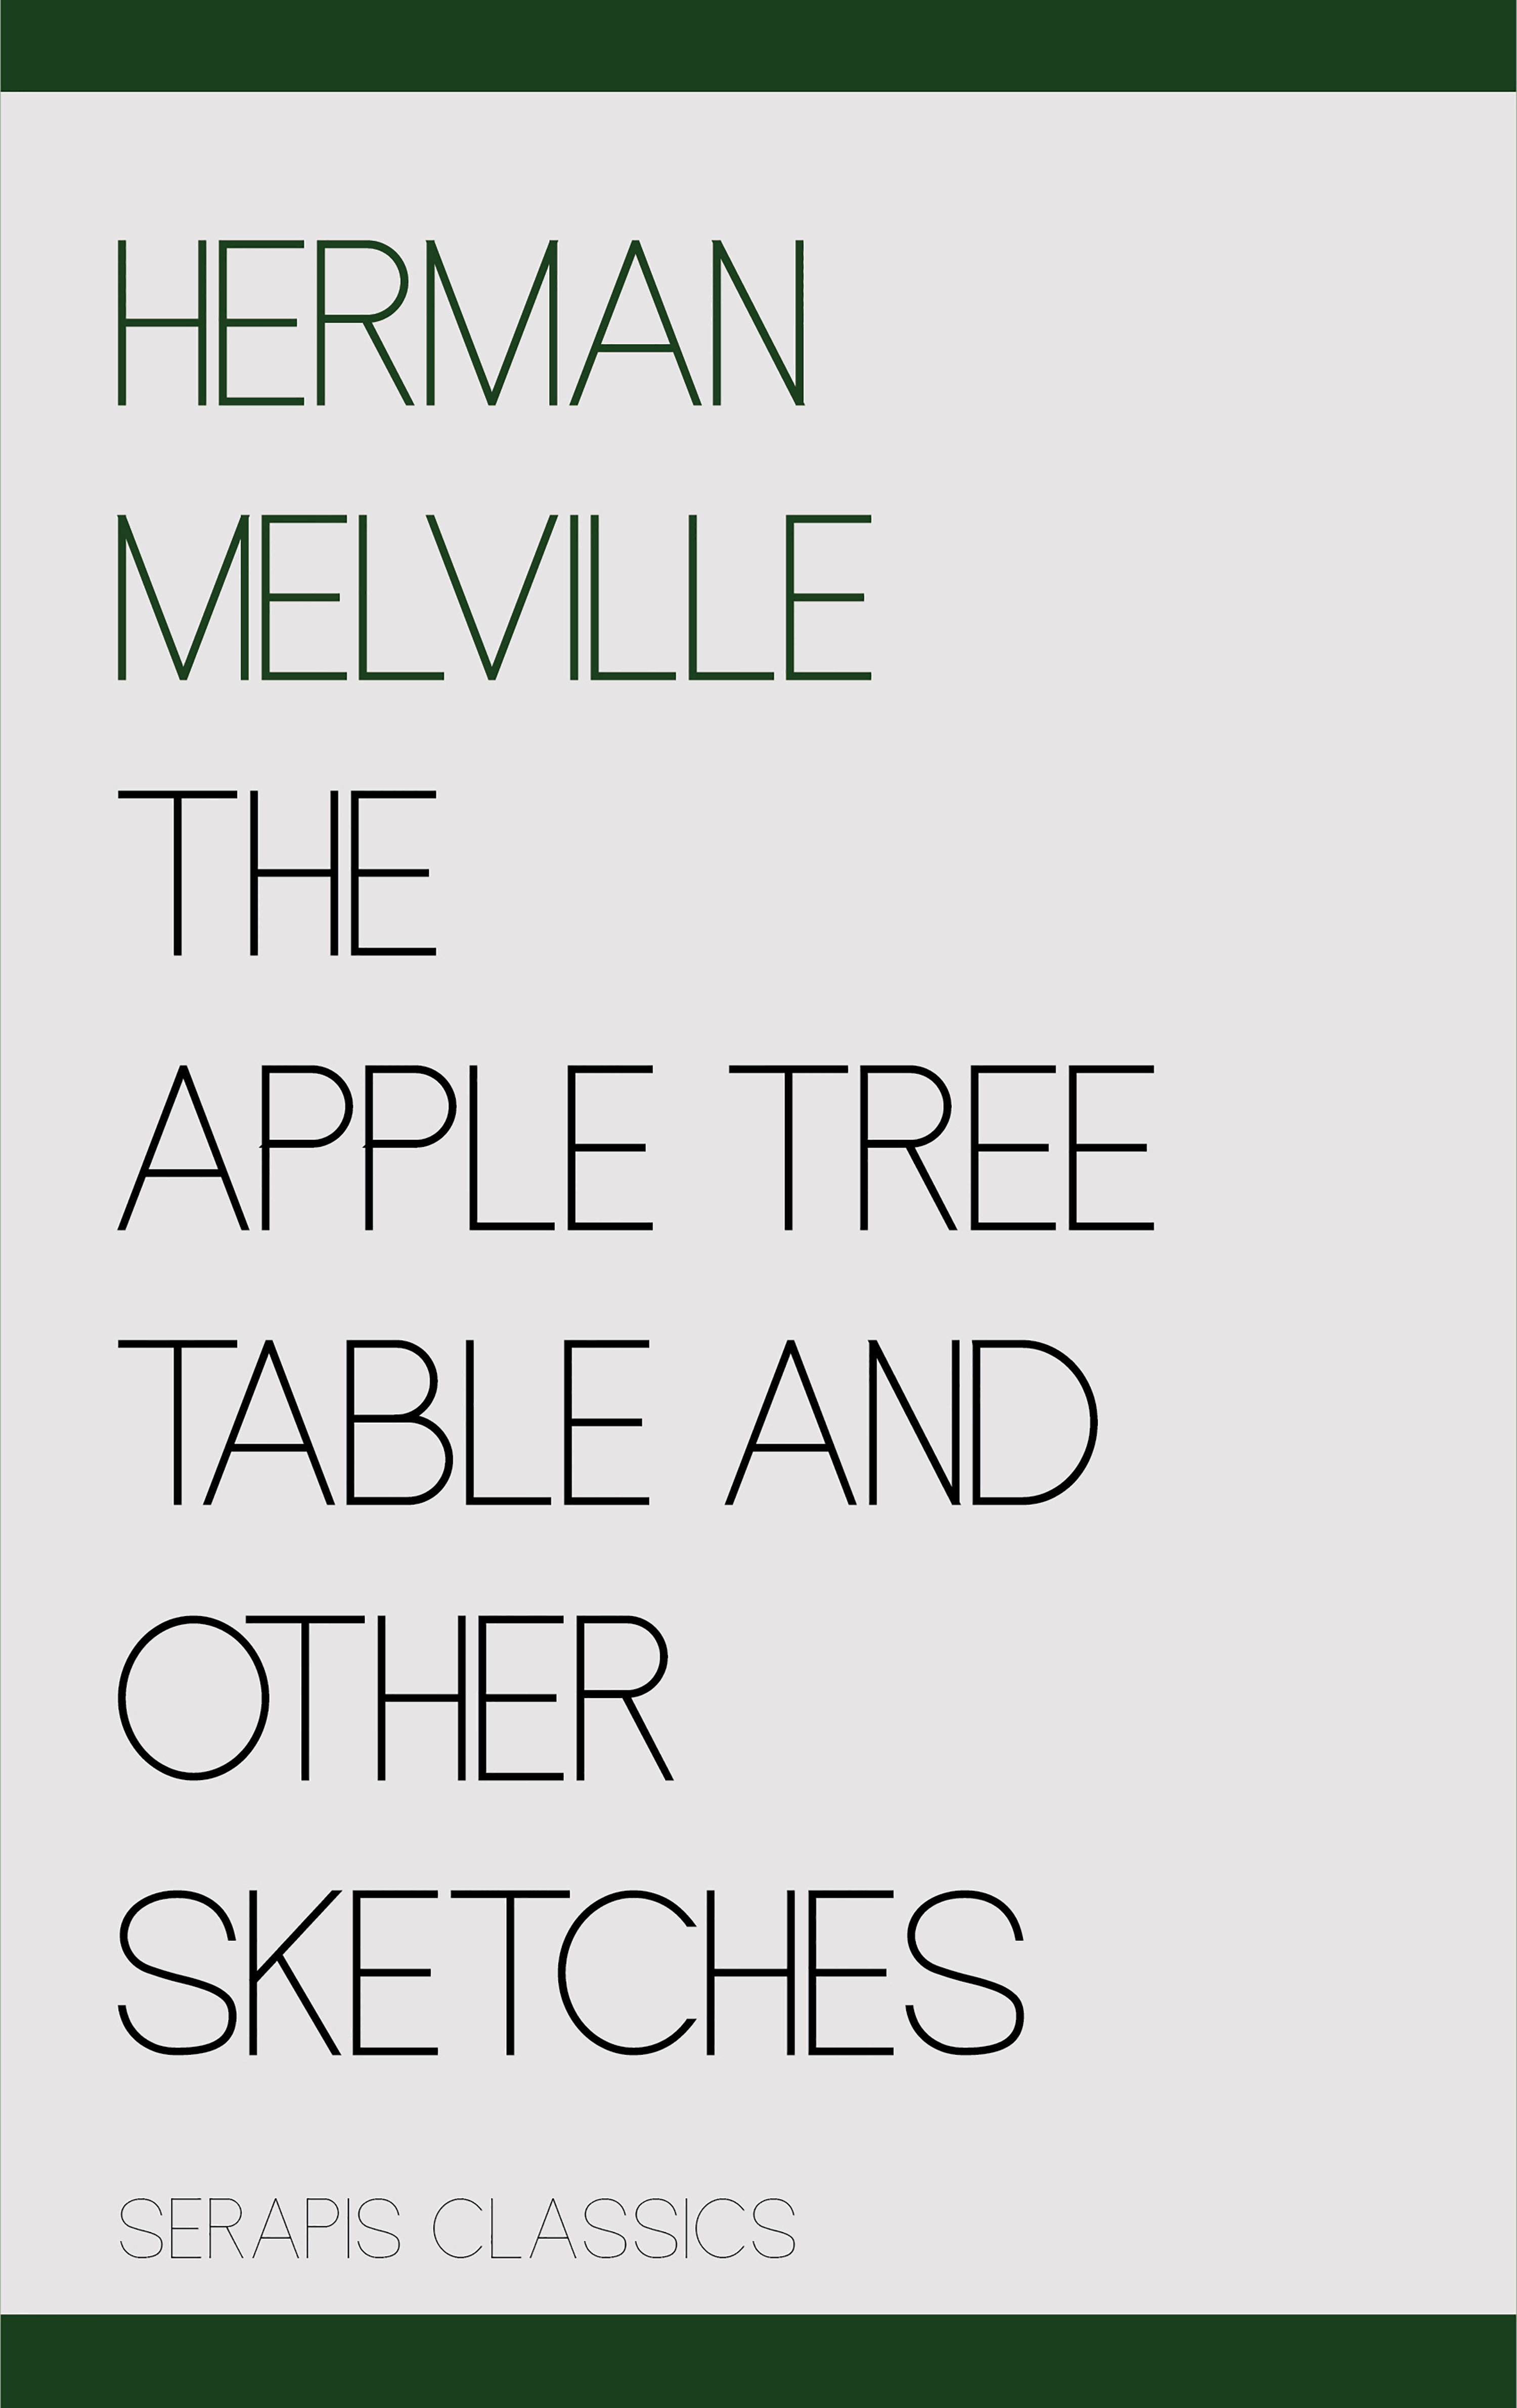 Herman Melville The Apple Tree Table and Other Sketches (Serapis Classics) melville herman the apple tree table and other sketches